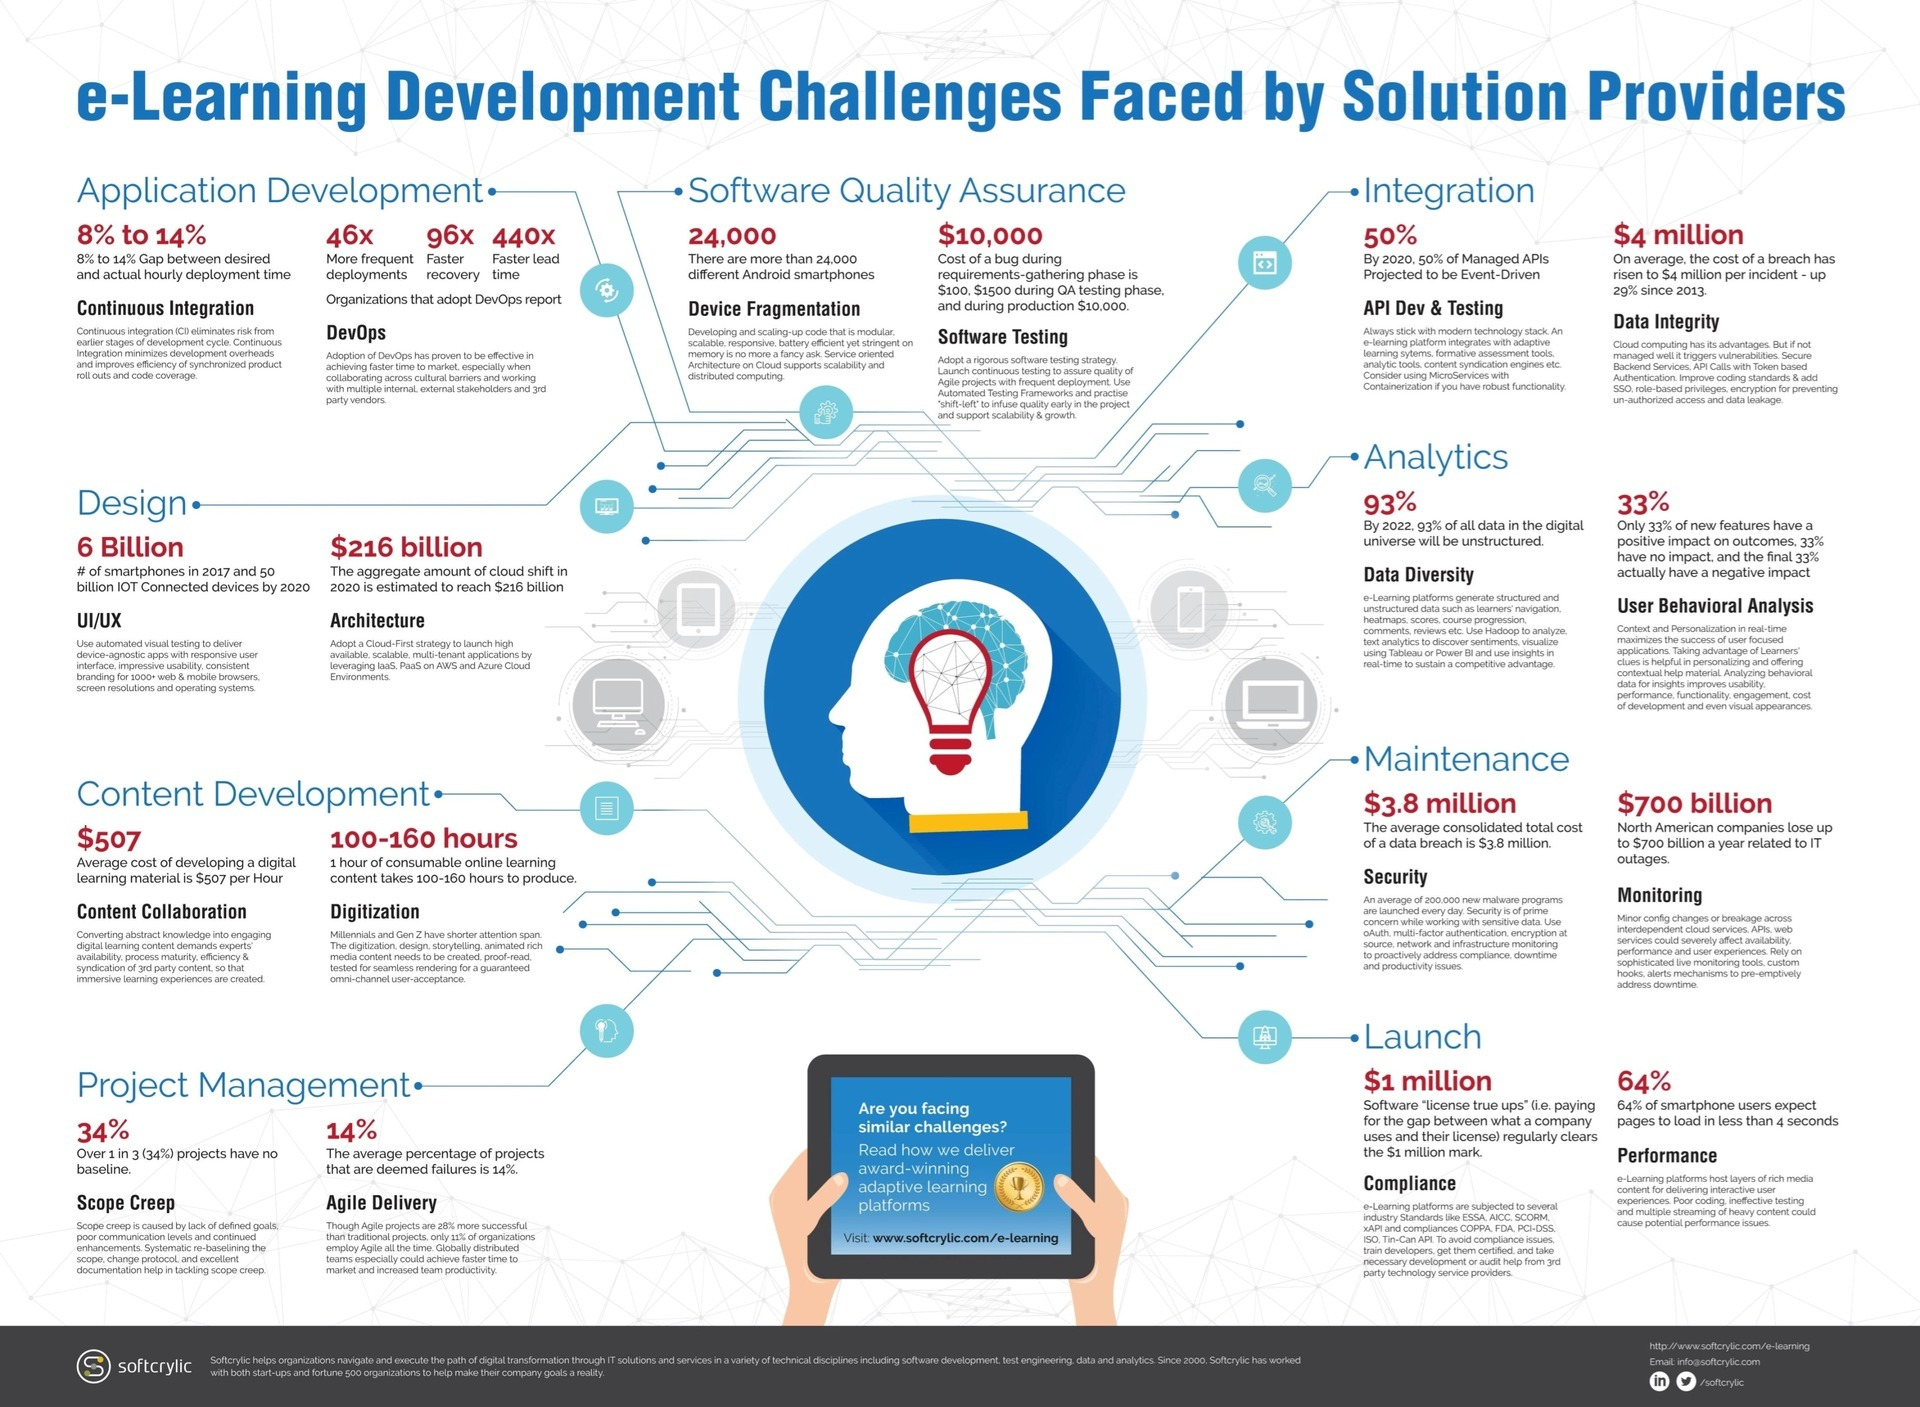 eLearning Development Challenges Faced by Solution Providers Infographic